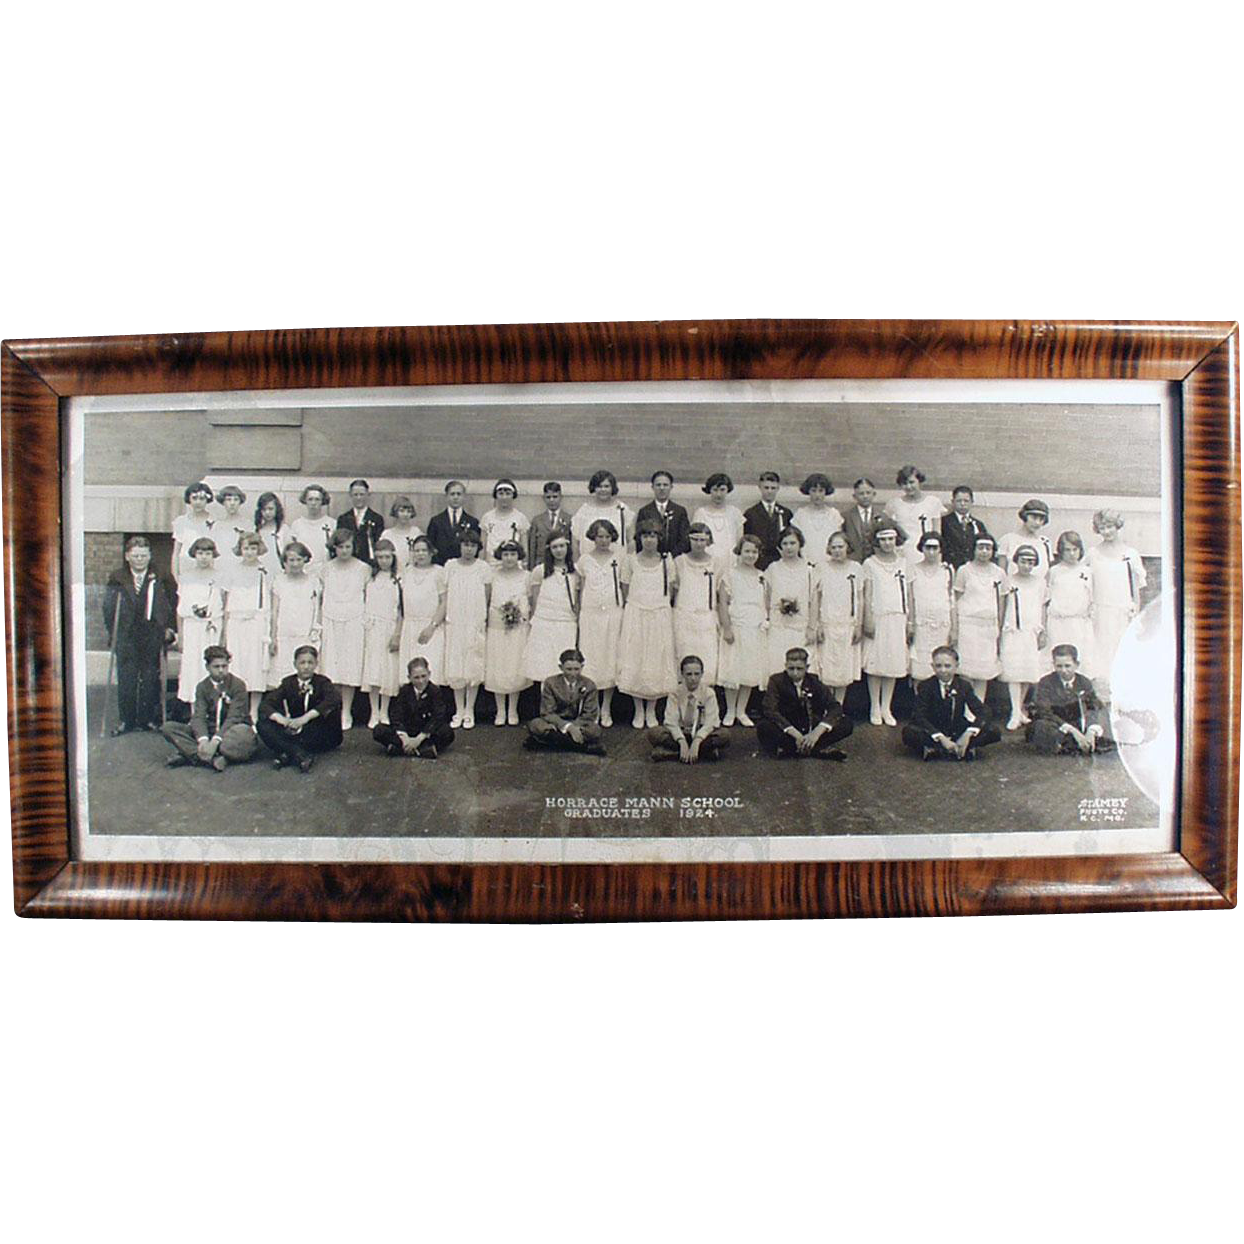 Vintage, Framed Photograph - 1924, Horrace Mann's Graduating Class - Kansas City